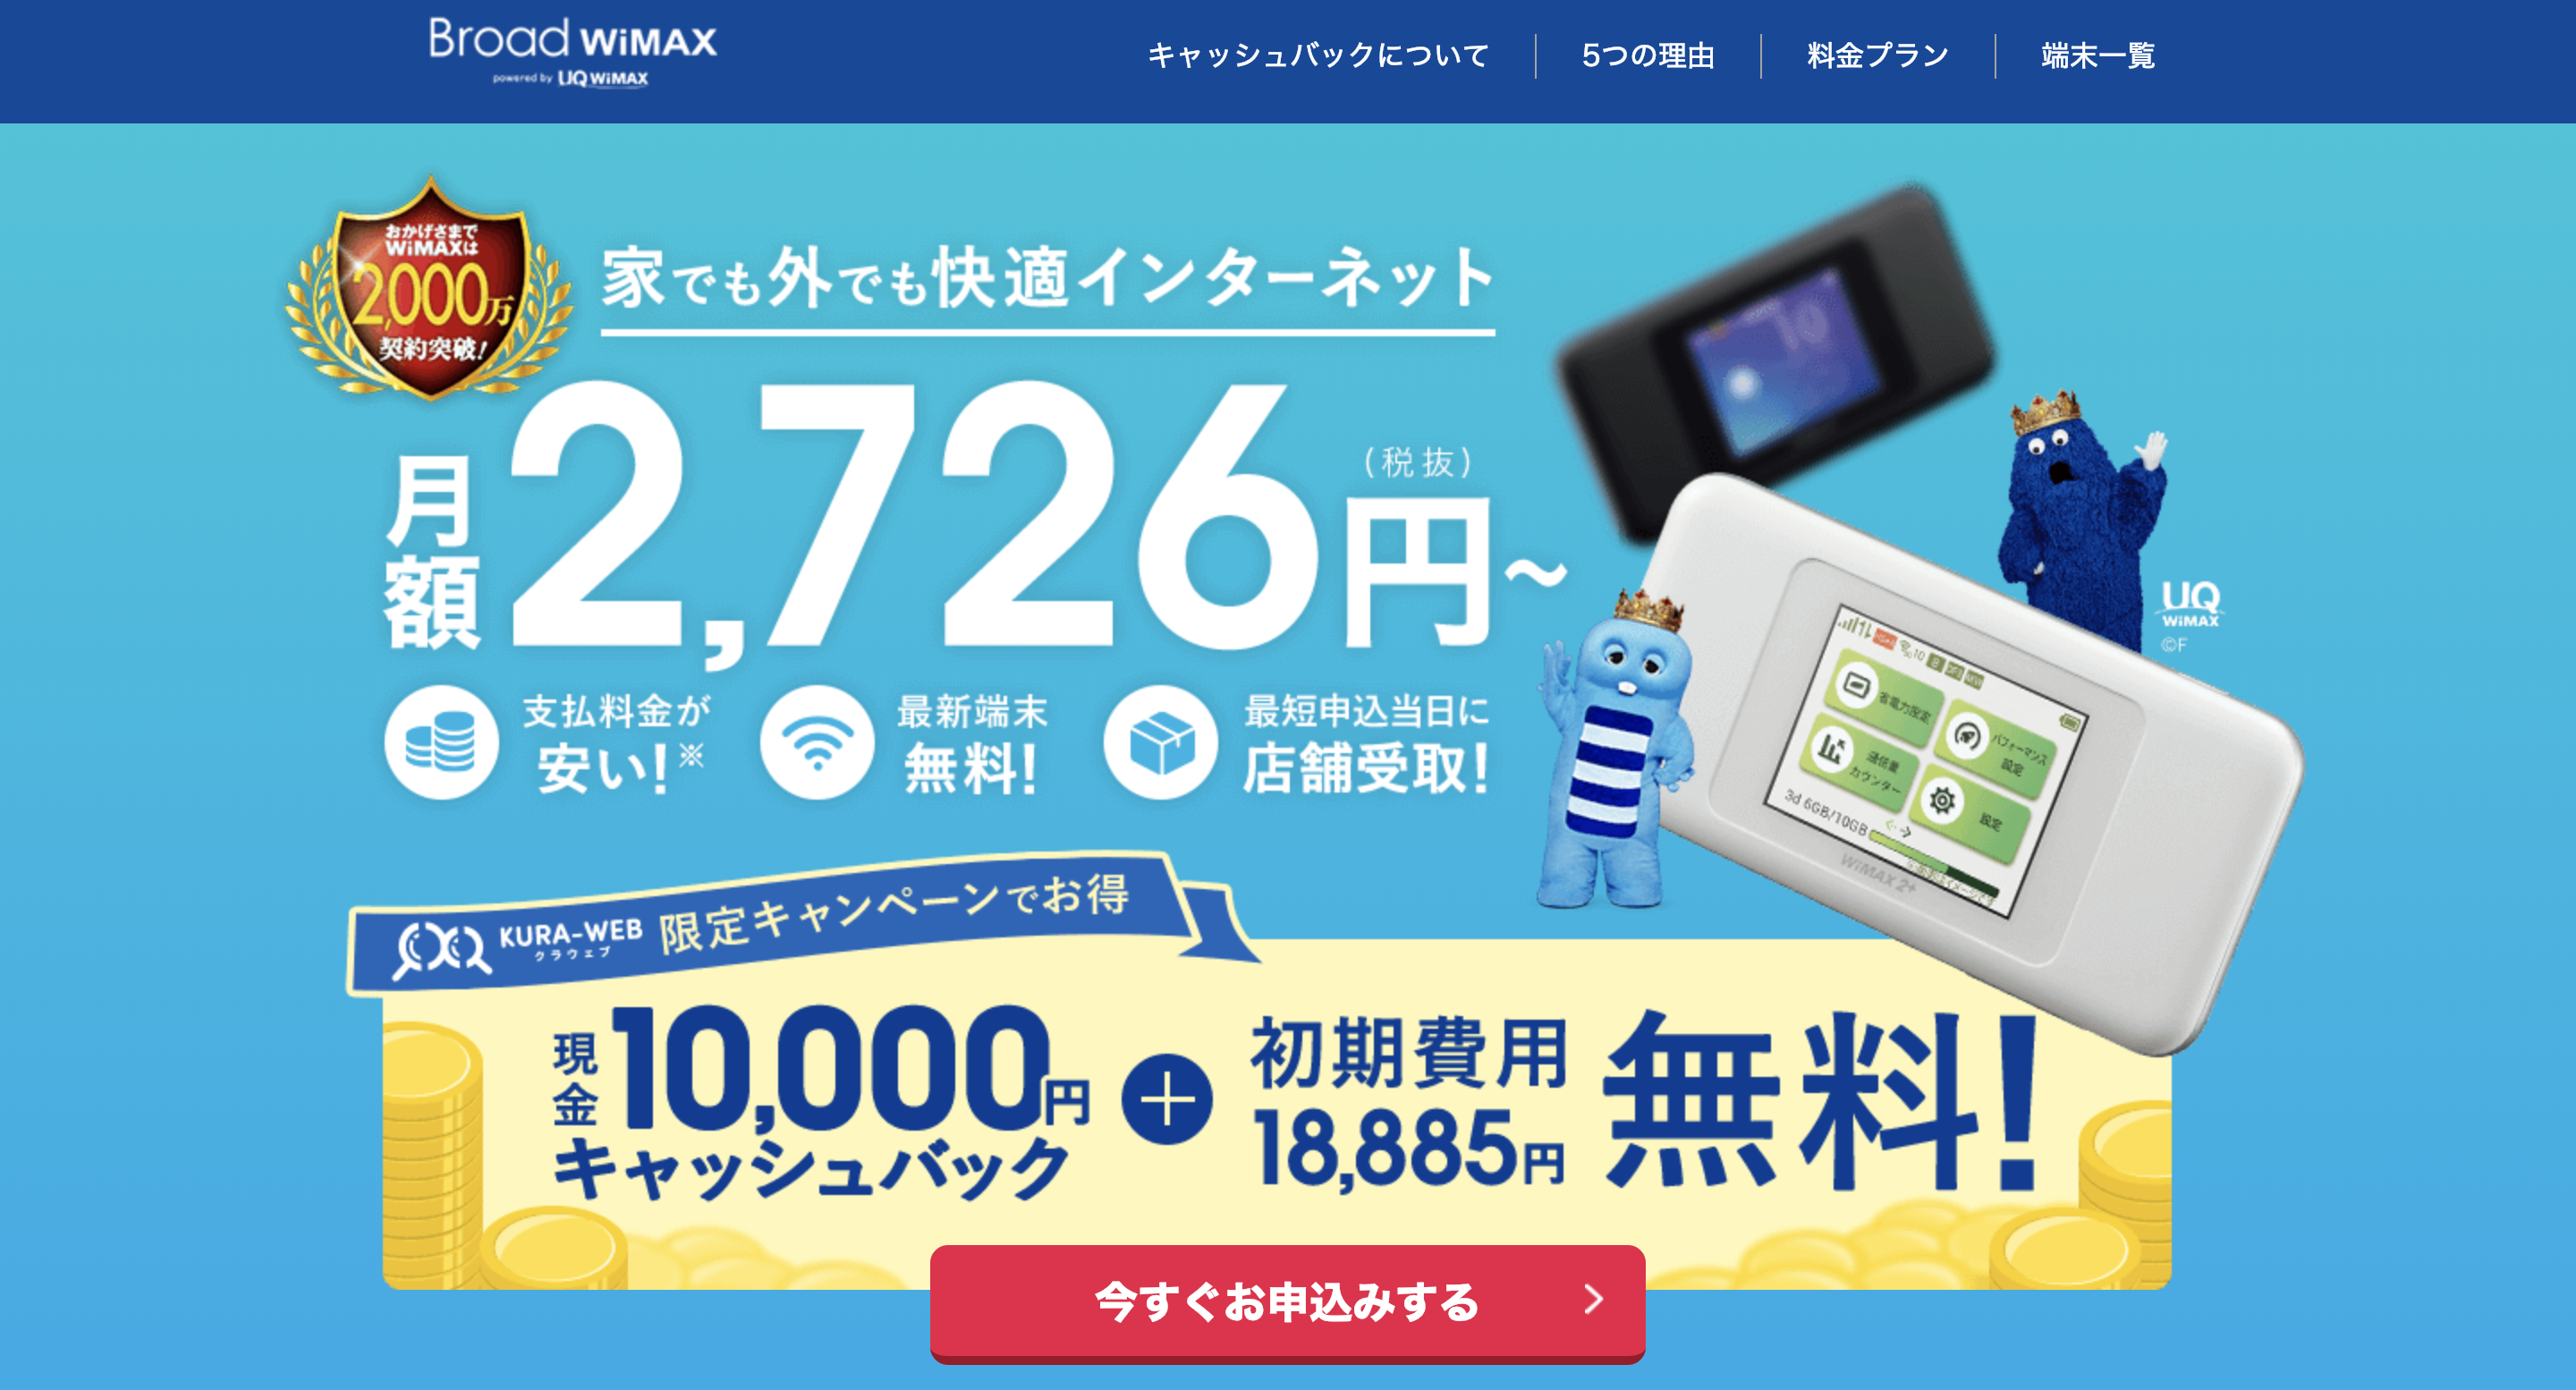 Broad WiMAX独自キャンペーン